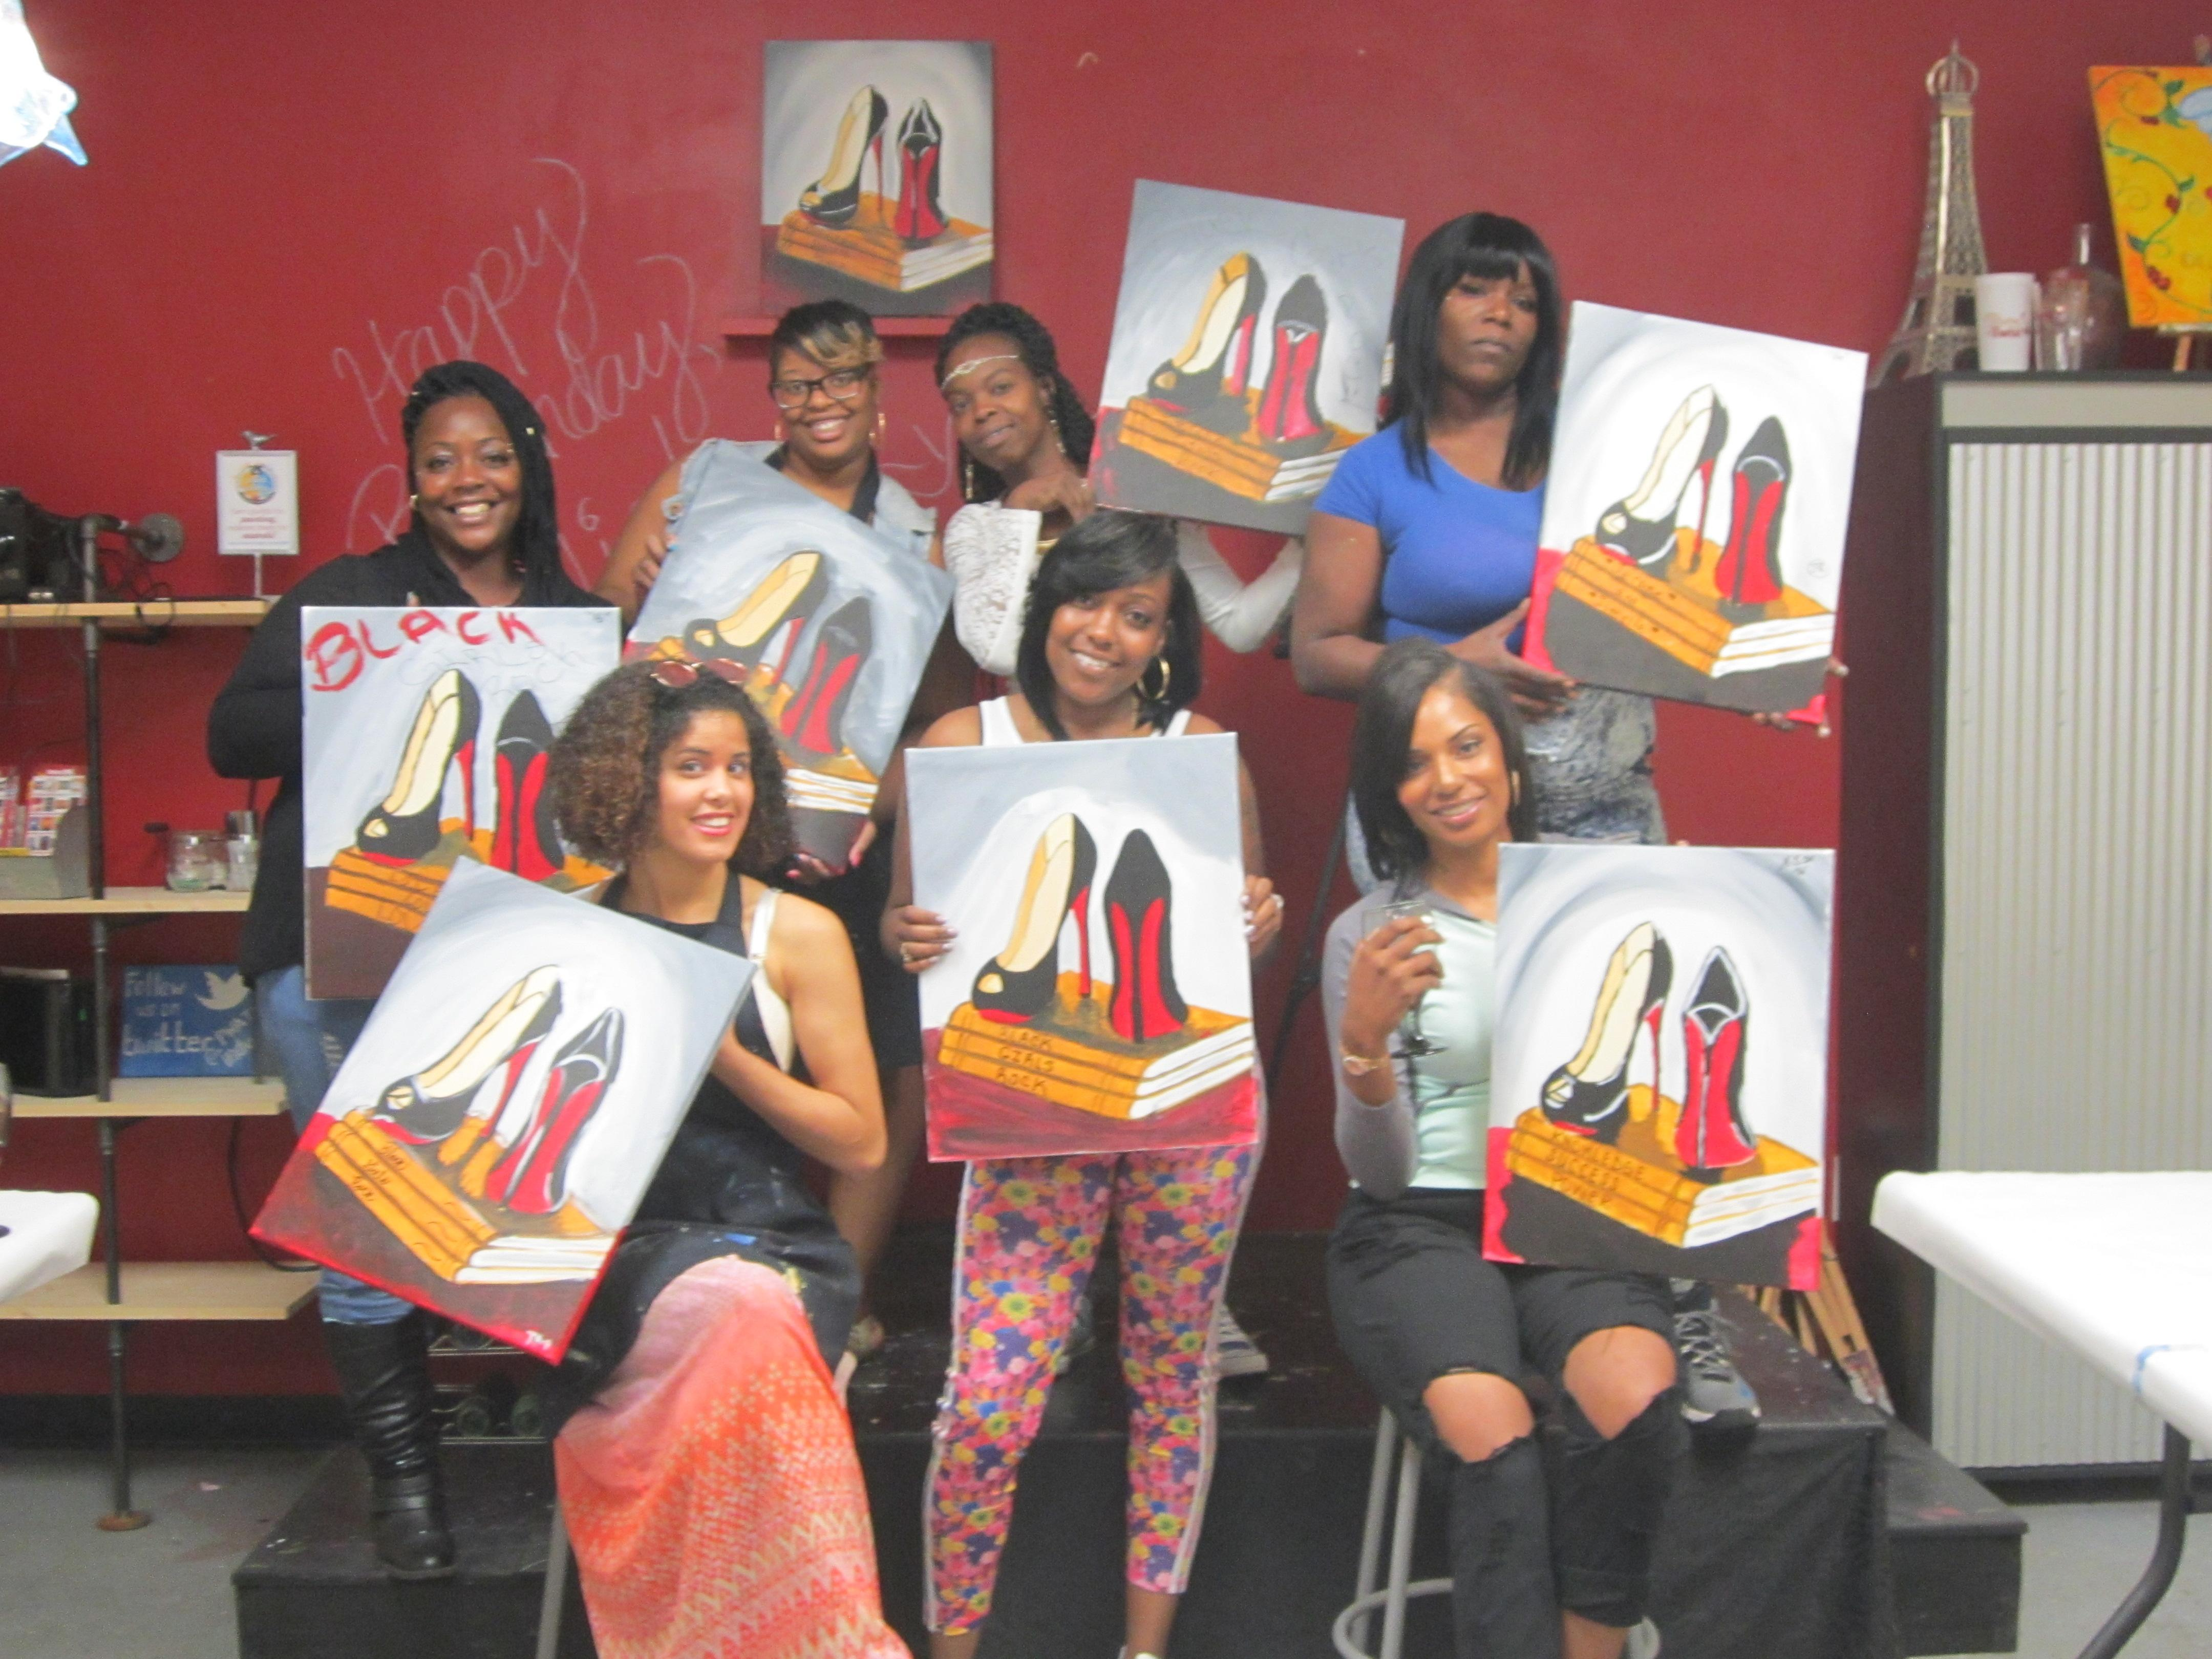 Painting with a twist indianapolis indiana in for Wine and paint indianapolis